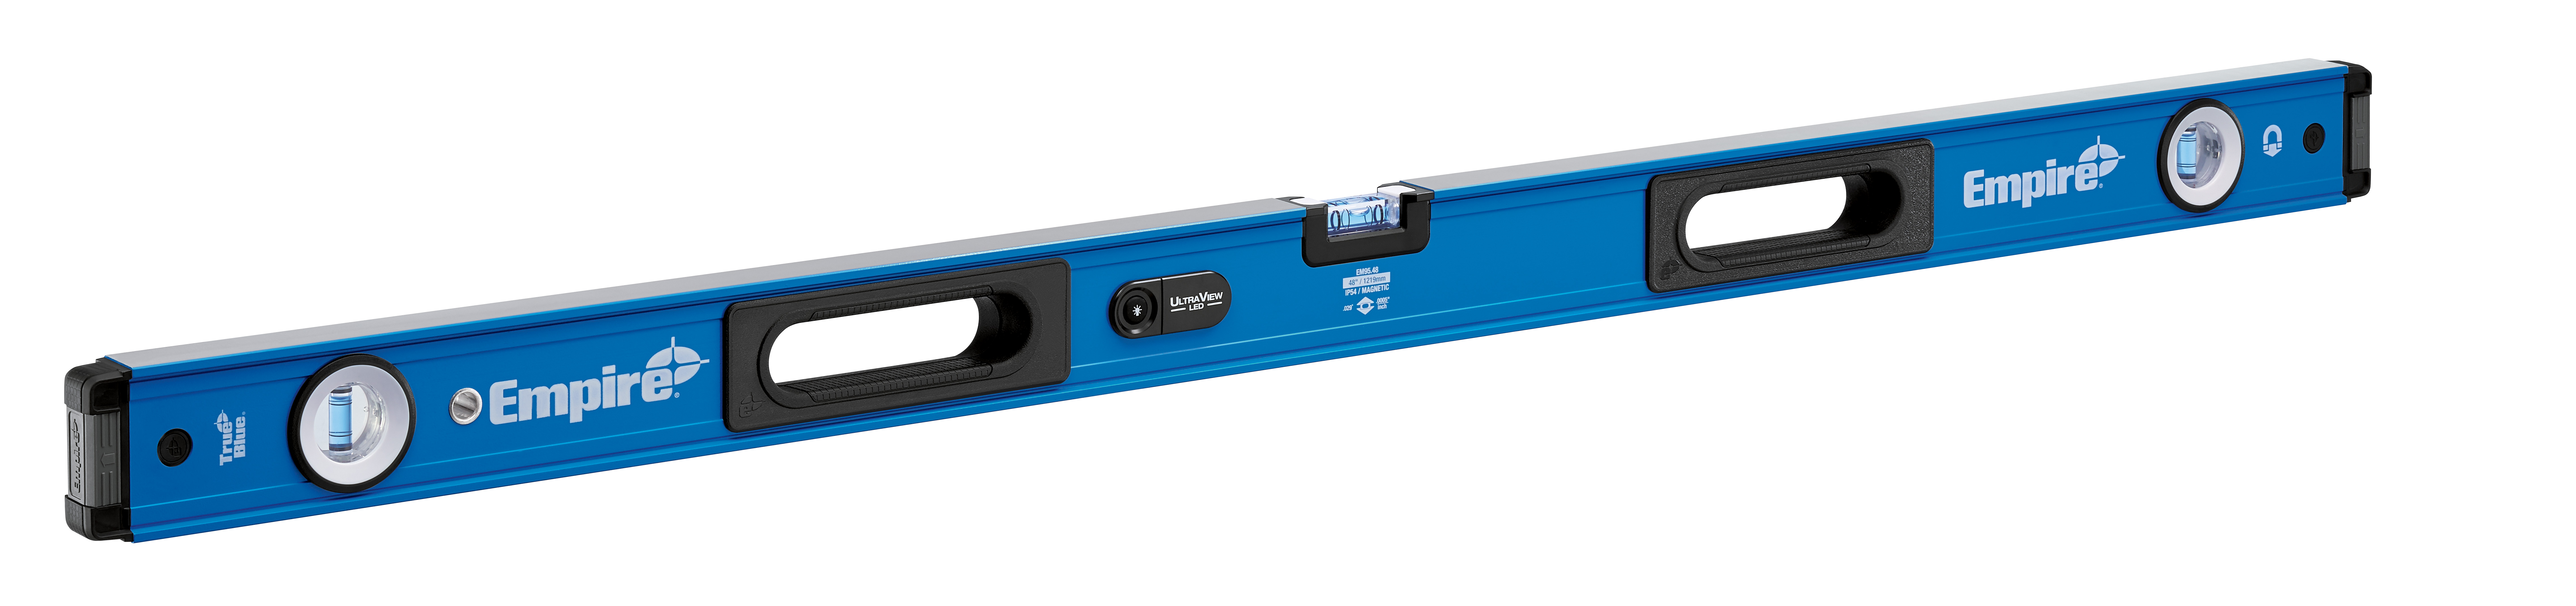 Milwaukee® Empire® TRUE BLUE® ULTRA VIEW® EM95.48 E95 Magnetic LED Box Level, 48 in L, 3 Vials, Aluminum, (1) Level, (2) Plumb Vial Position, 0.0005 in/in Accuracy